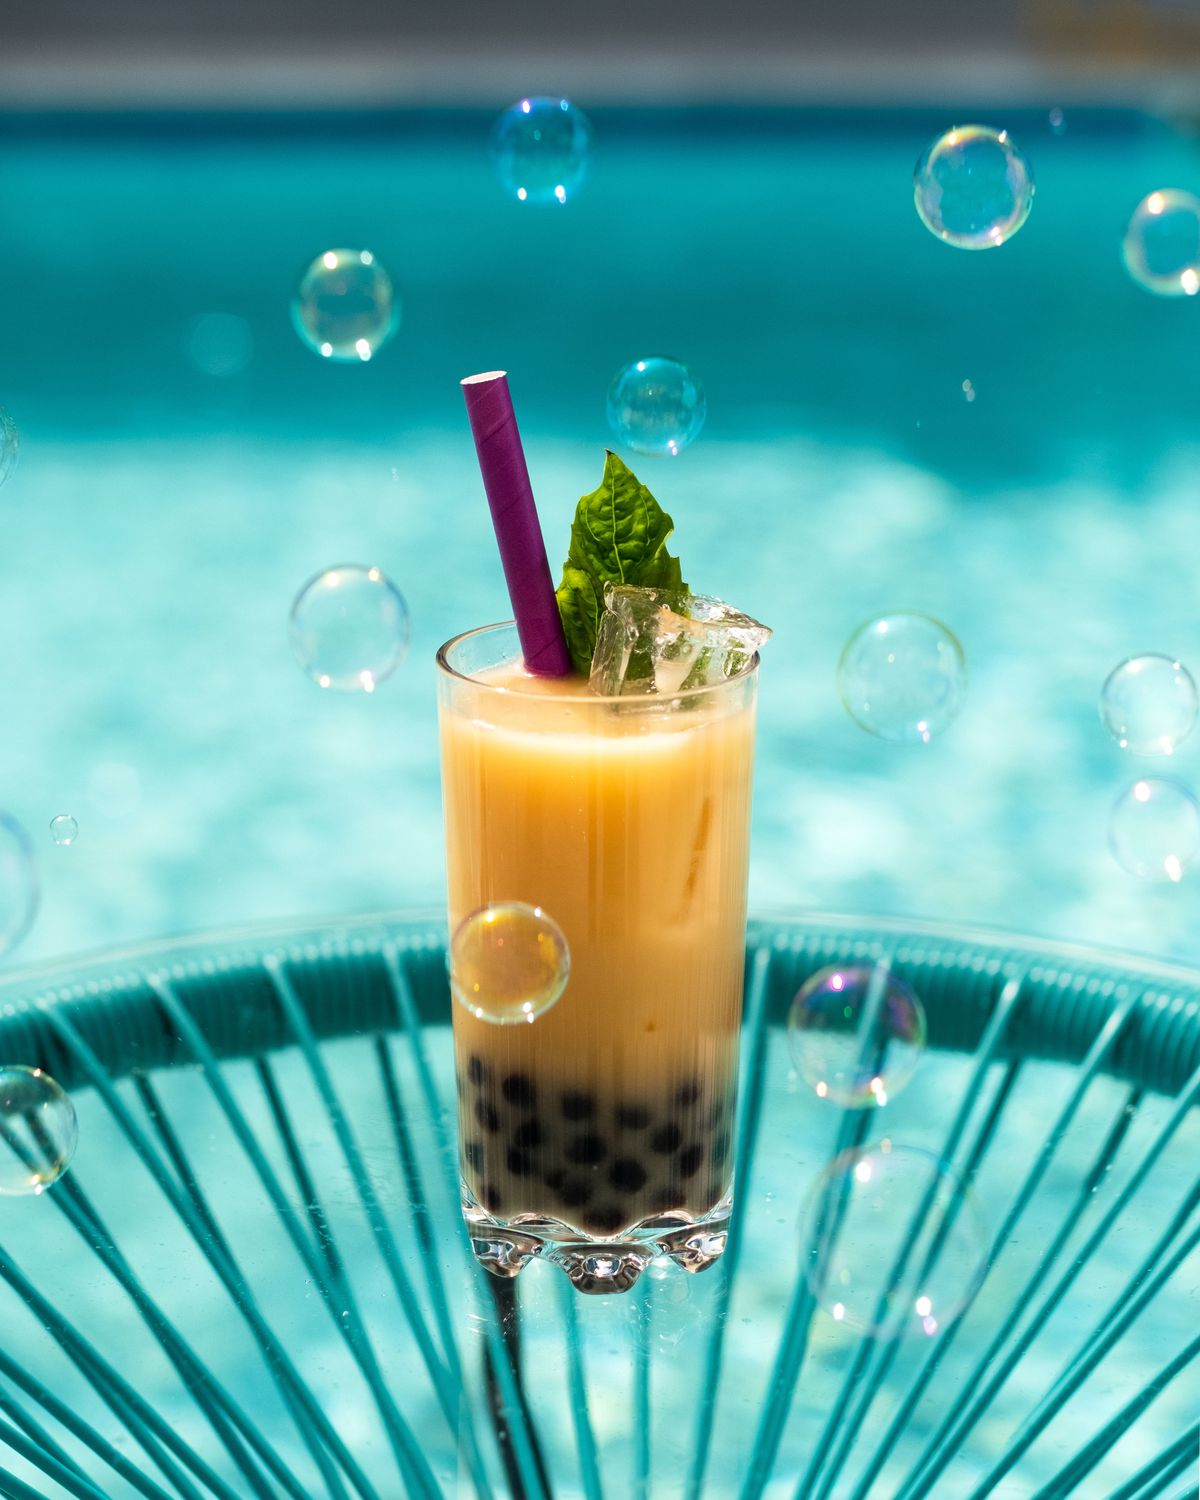 A boba drink on a blue table surronded by bubbles